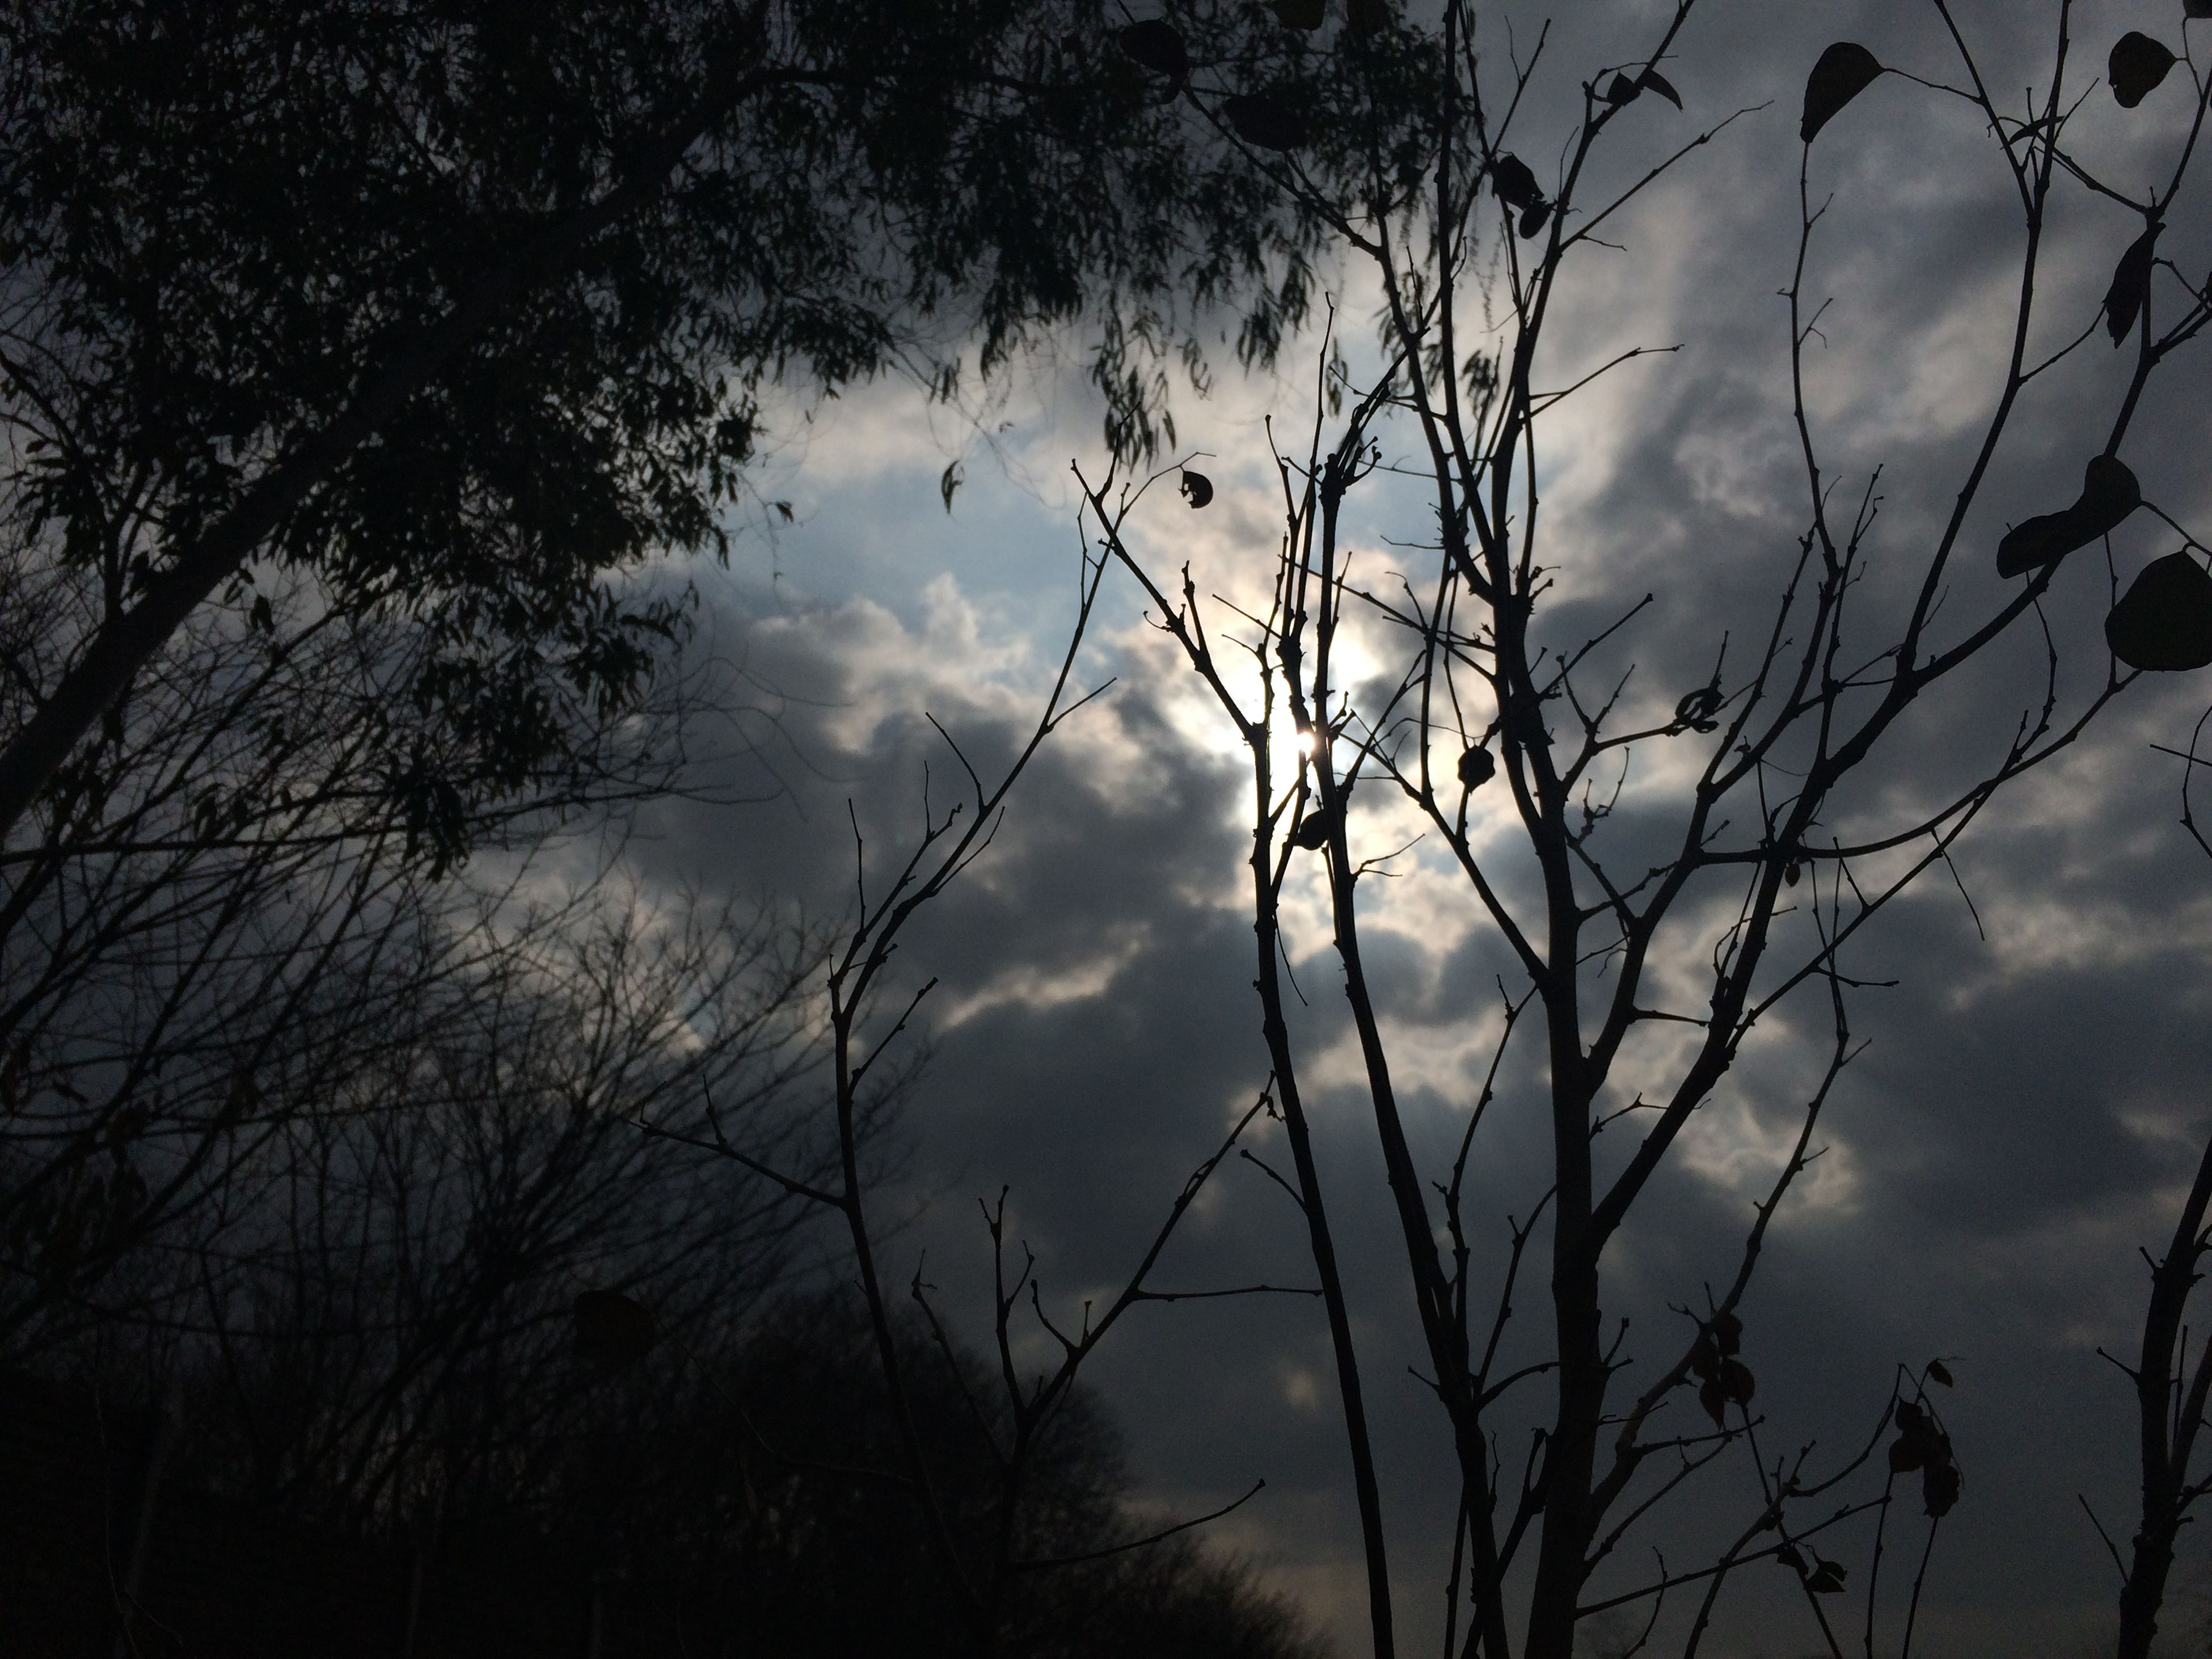 sky, silhouette, cloud - sky, low angle view, tranquility, tree, beauty in nature, nature, cloudy, scenics, tranquil scene, branch, growth, cloud, bare tree, dusk, sunset, outdoors, plant, idyllic